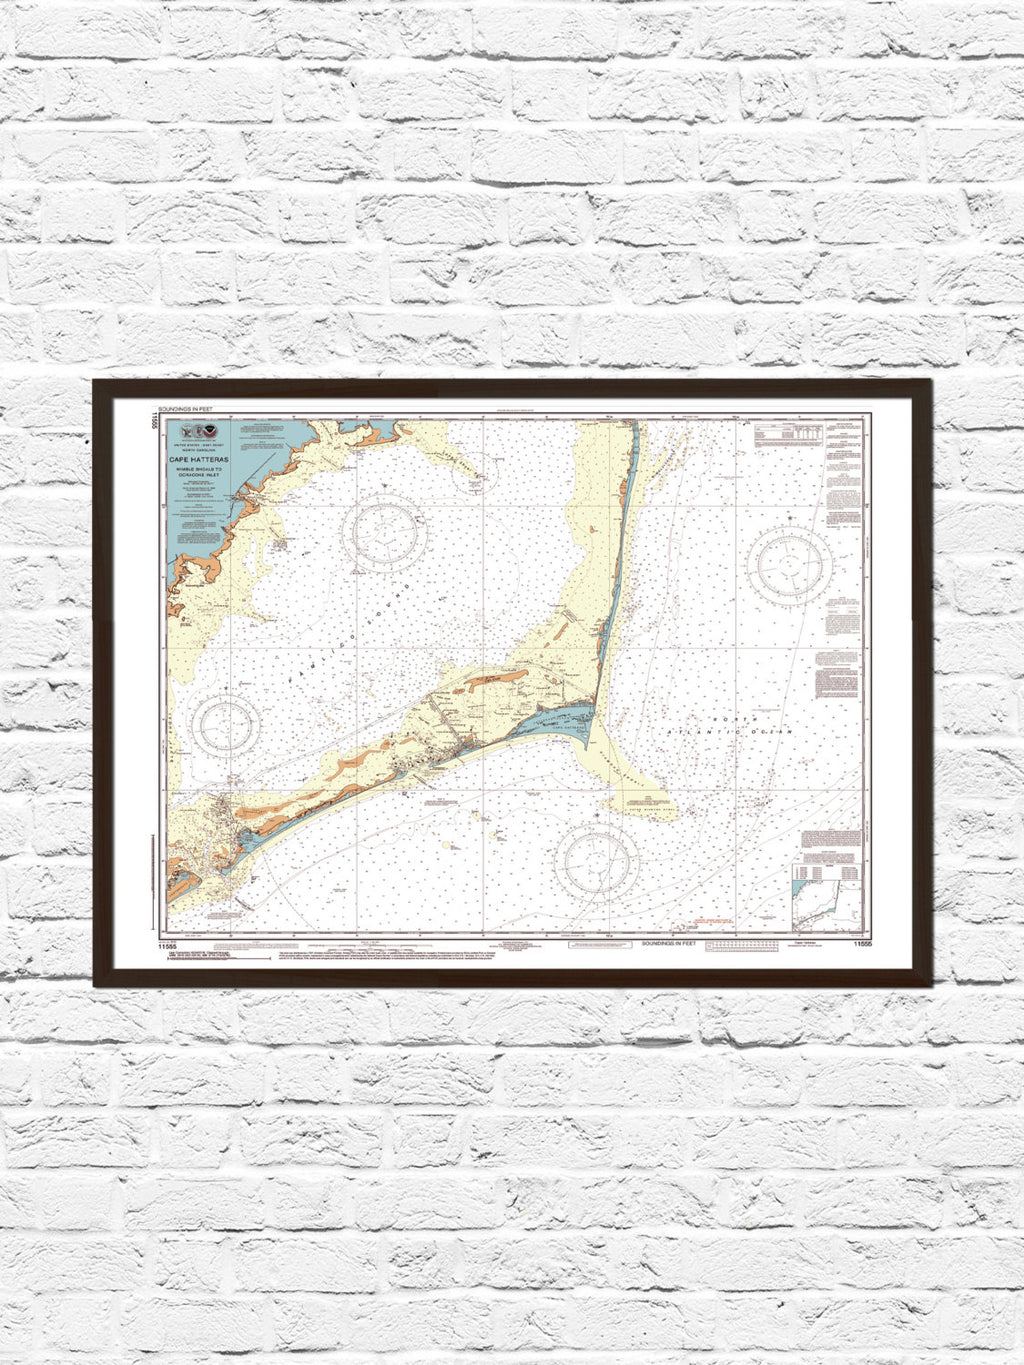 Cape Hatteras North Carolina Map Print - ParMar Media - 1